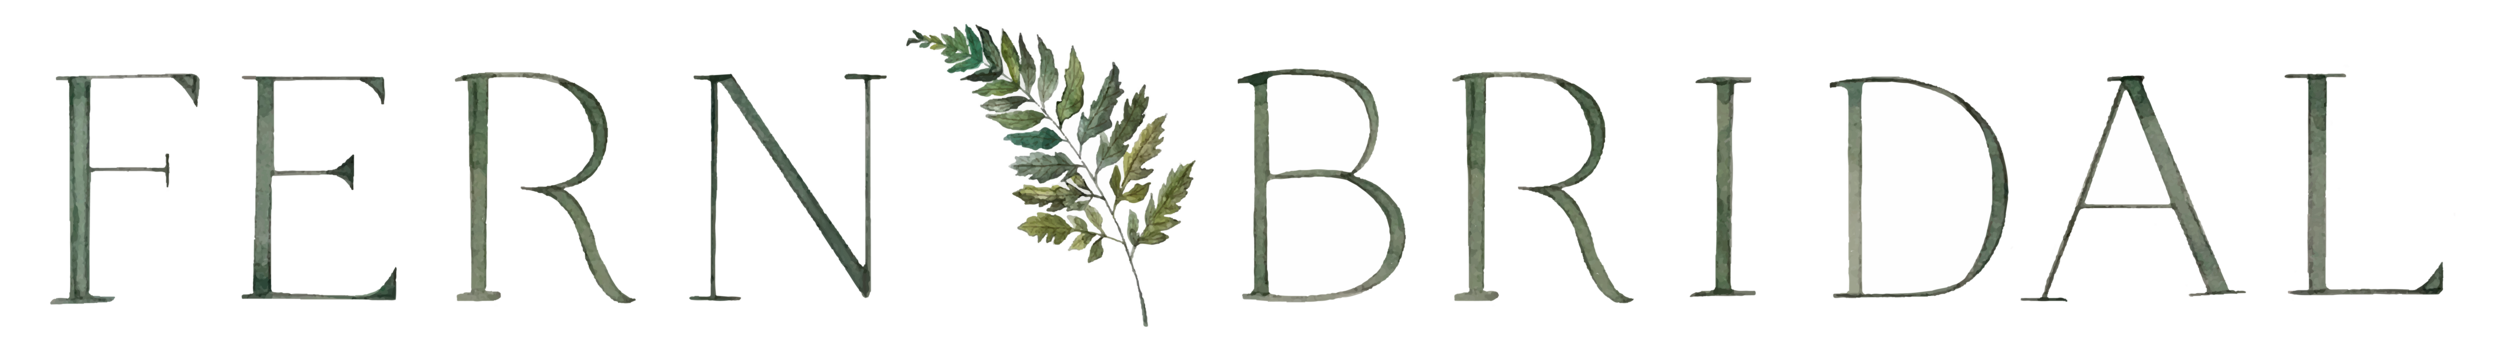 Fern Bridal with Fern Transparent Vector-01.png